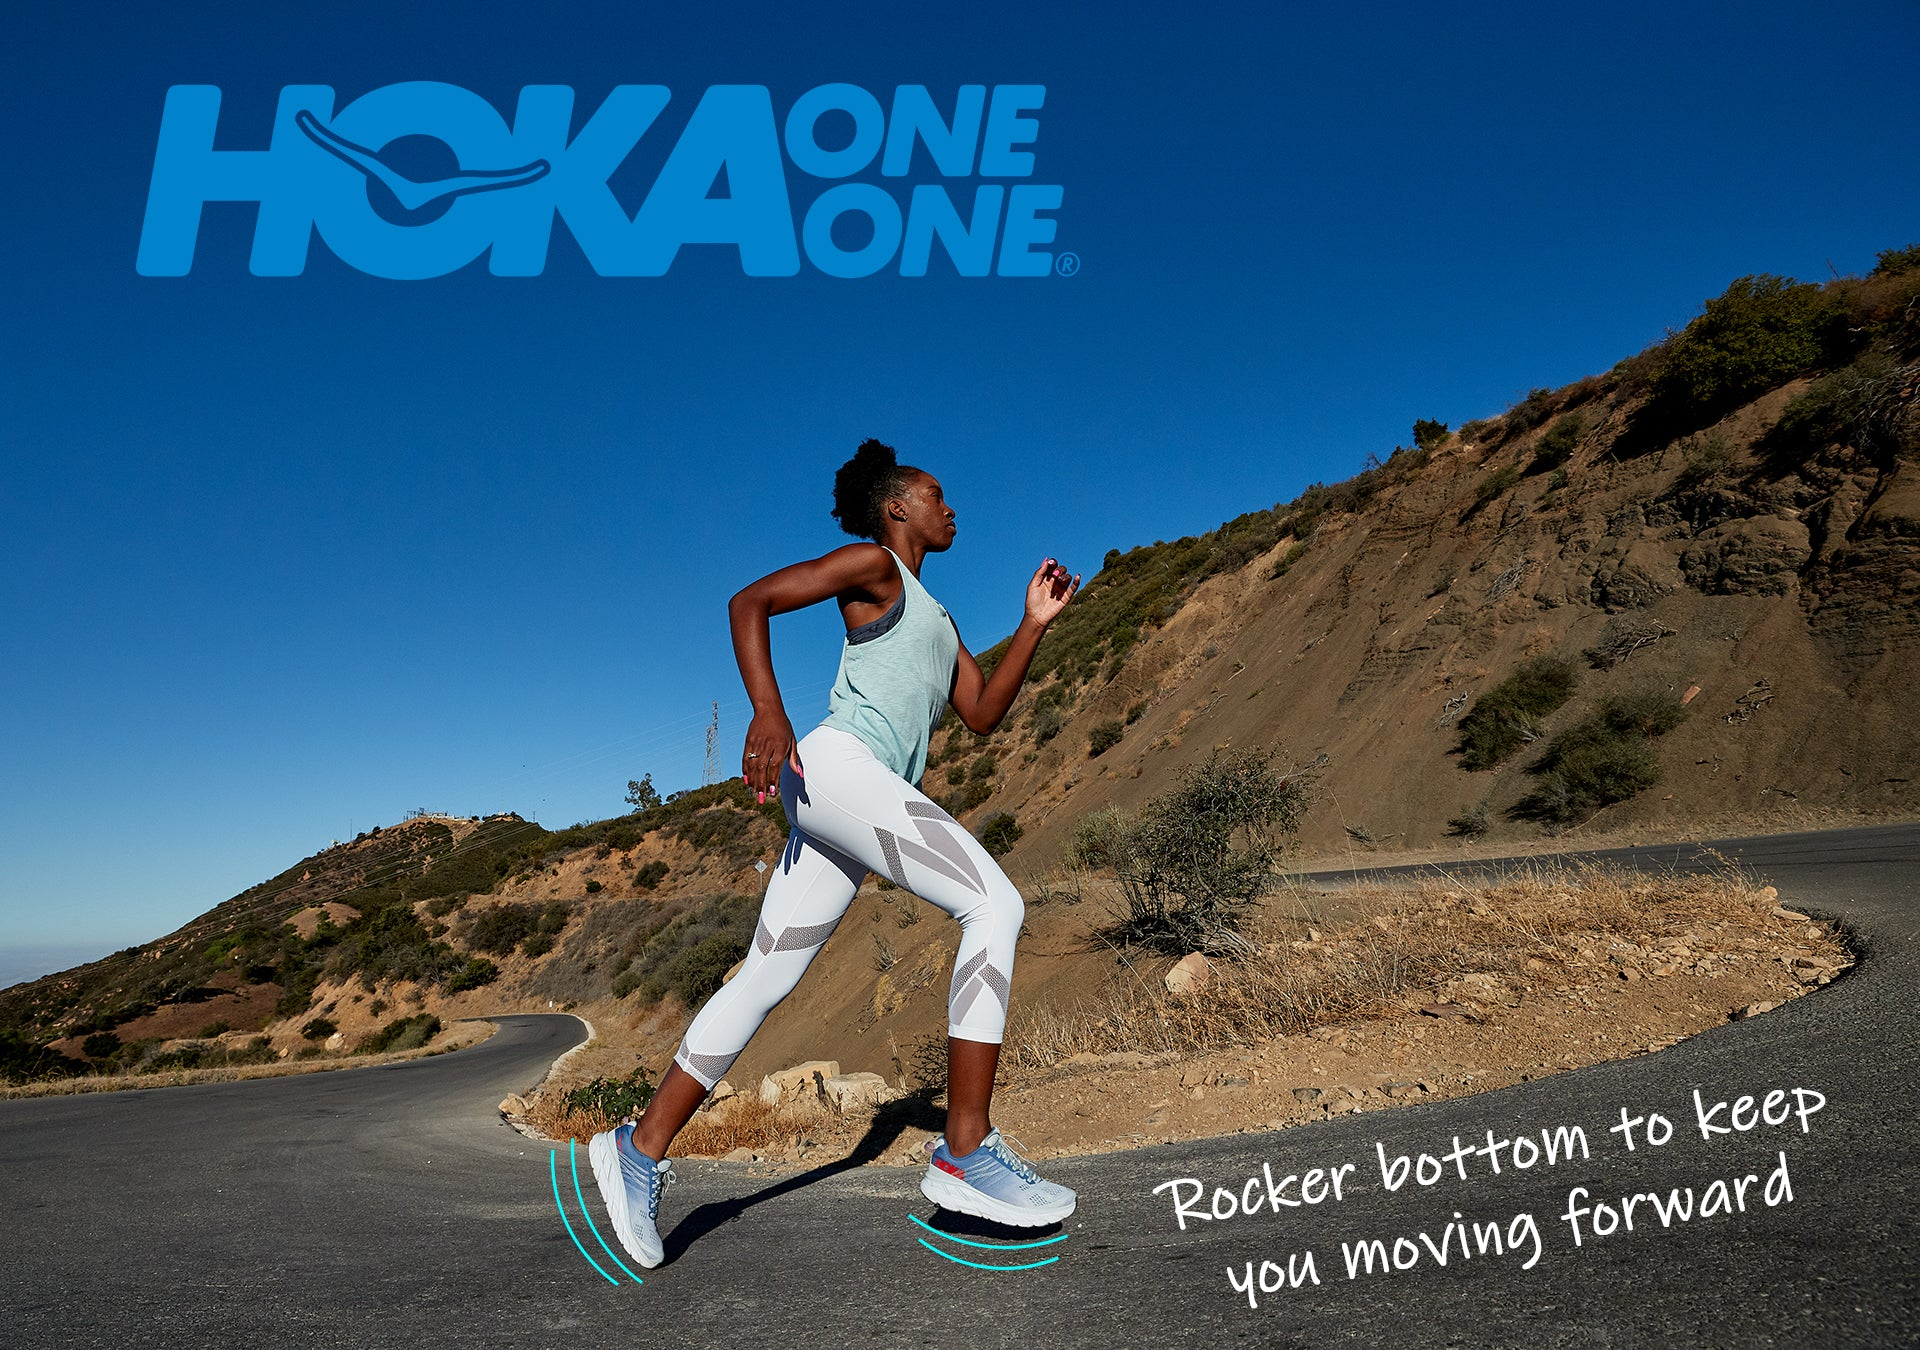 Have your heard of HOKA ONE ONE?